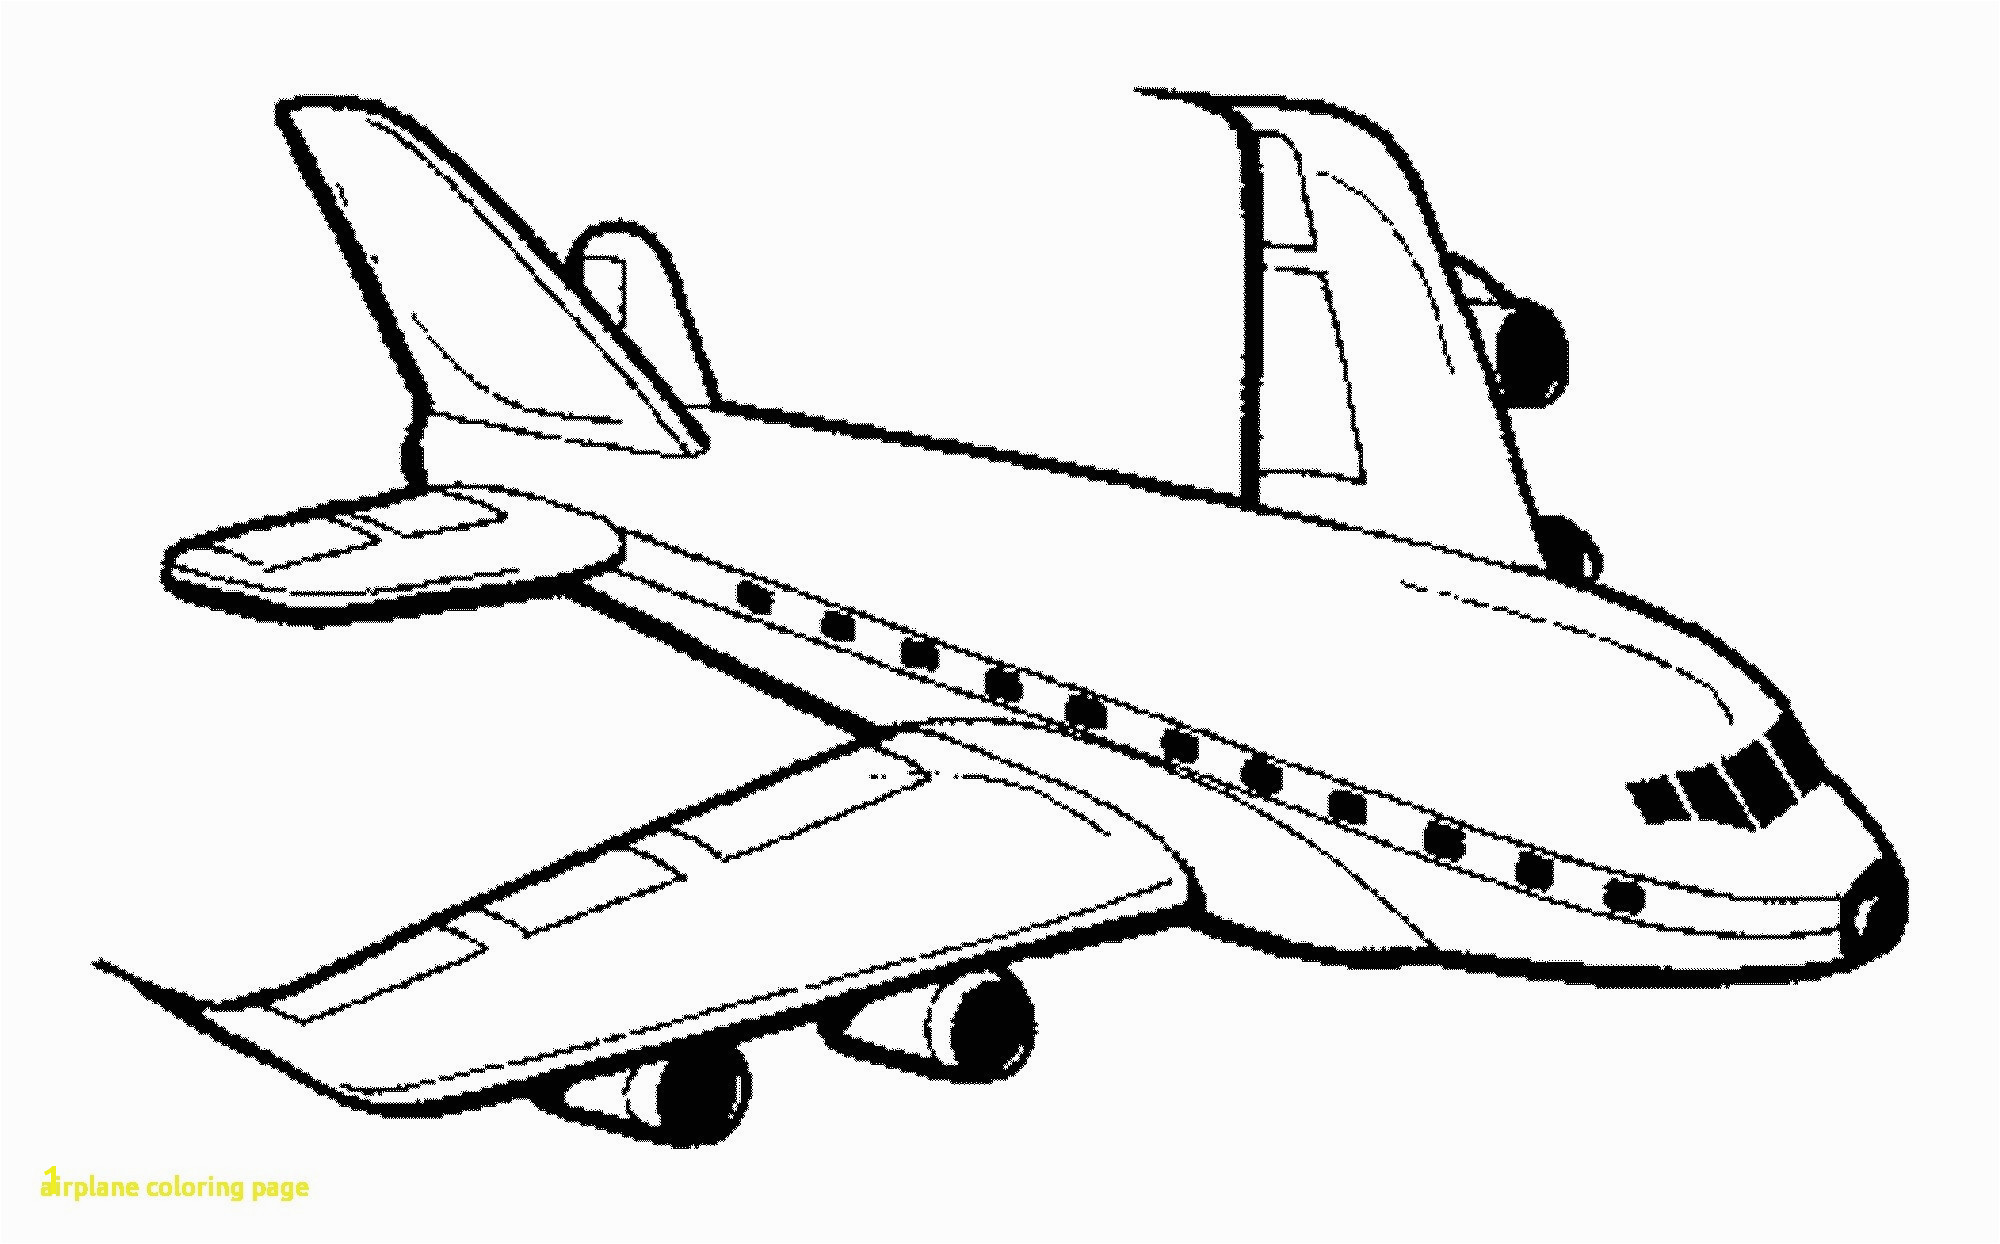 Coloring Pages Airplanes Airplane Coloring Pages Printable Coloring Page Airplane Free